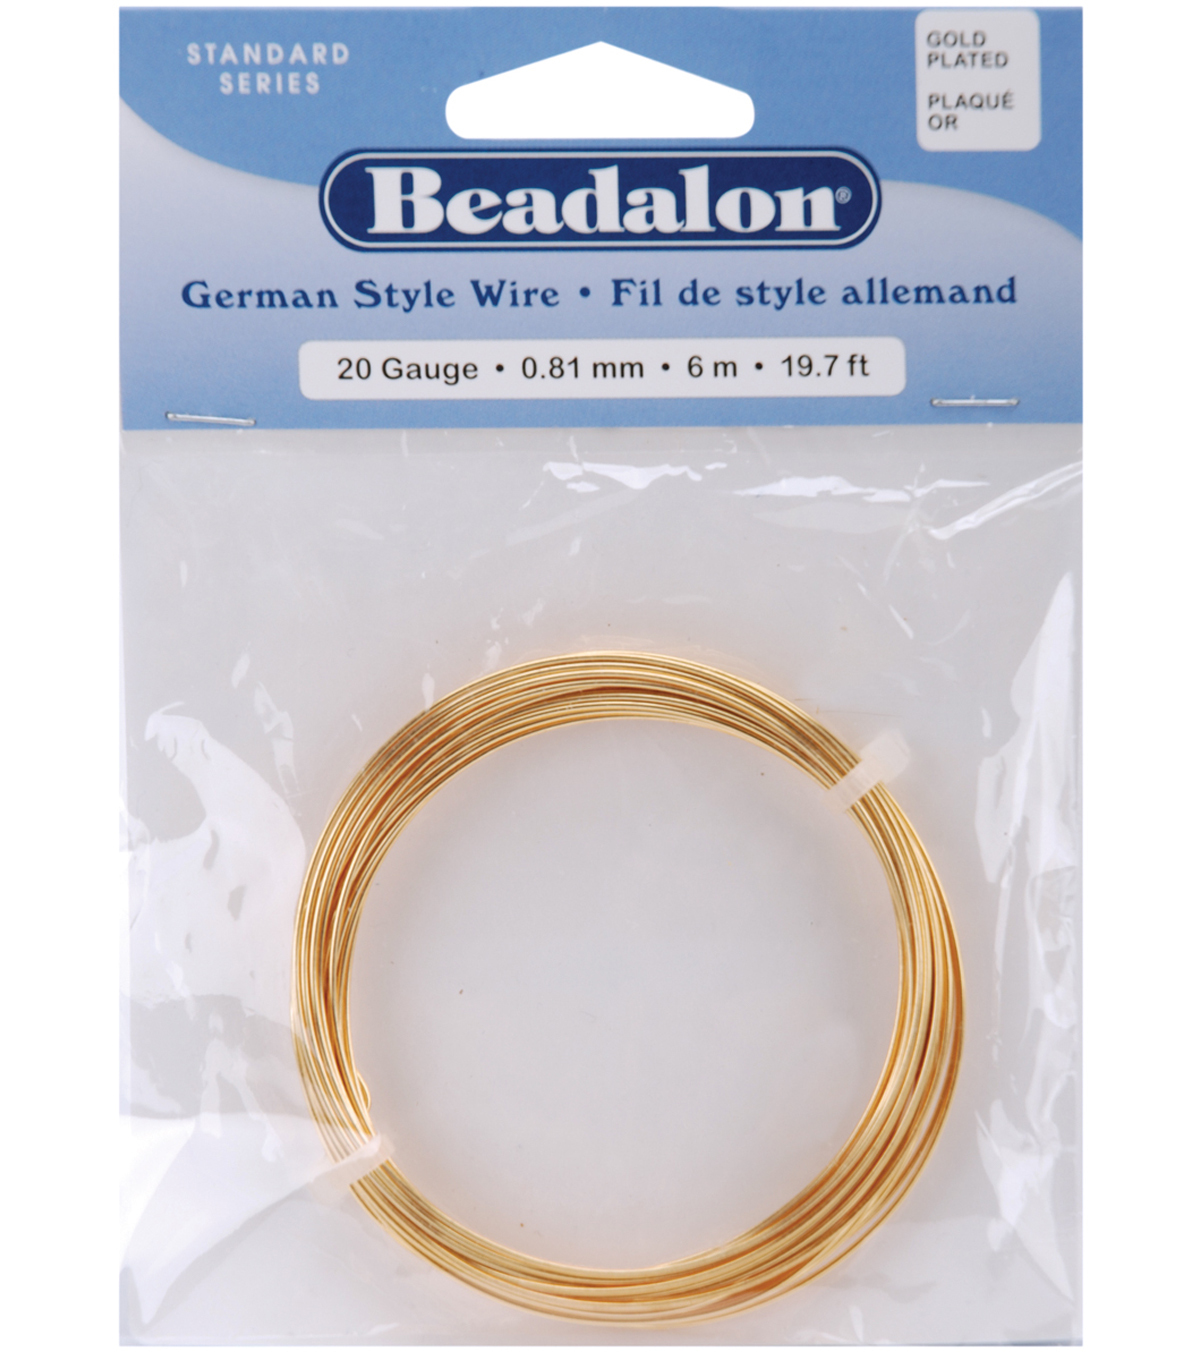 Beadalon German Style Round Wire 20 Gauge 19.7 Feet/Pkg-Gold